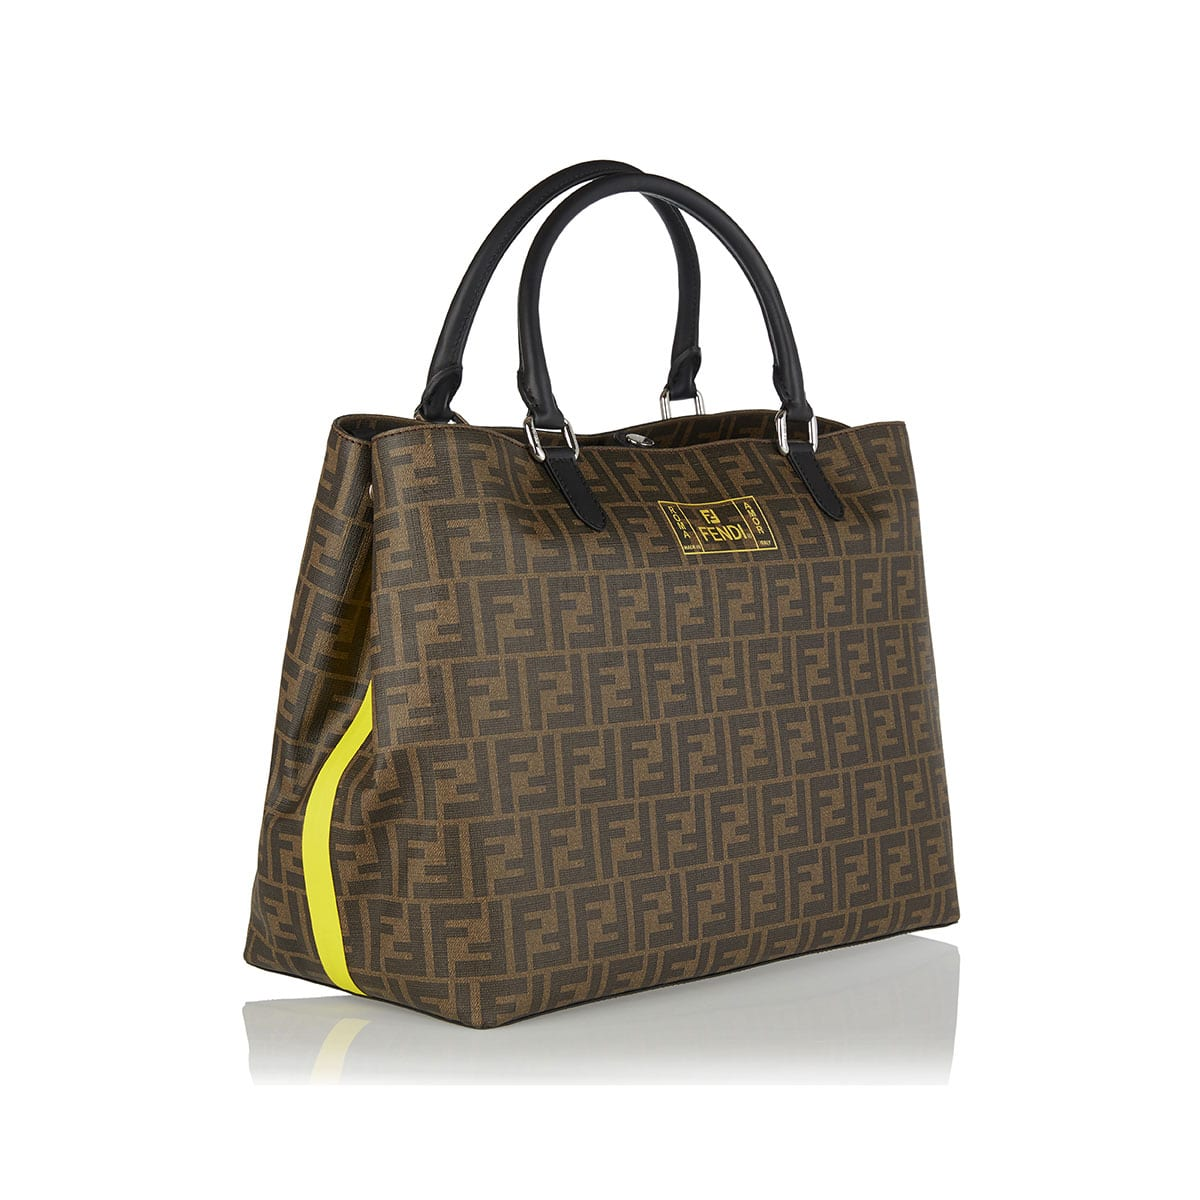 FF large tote